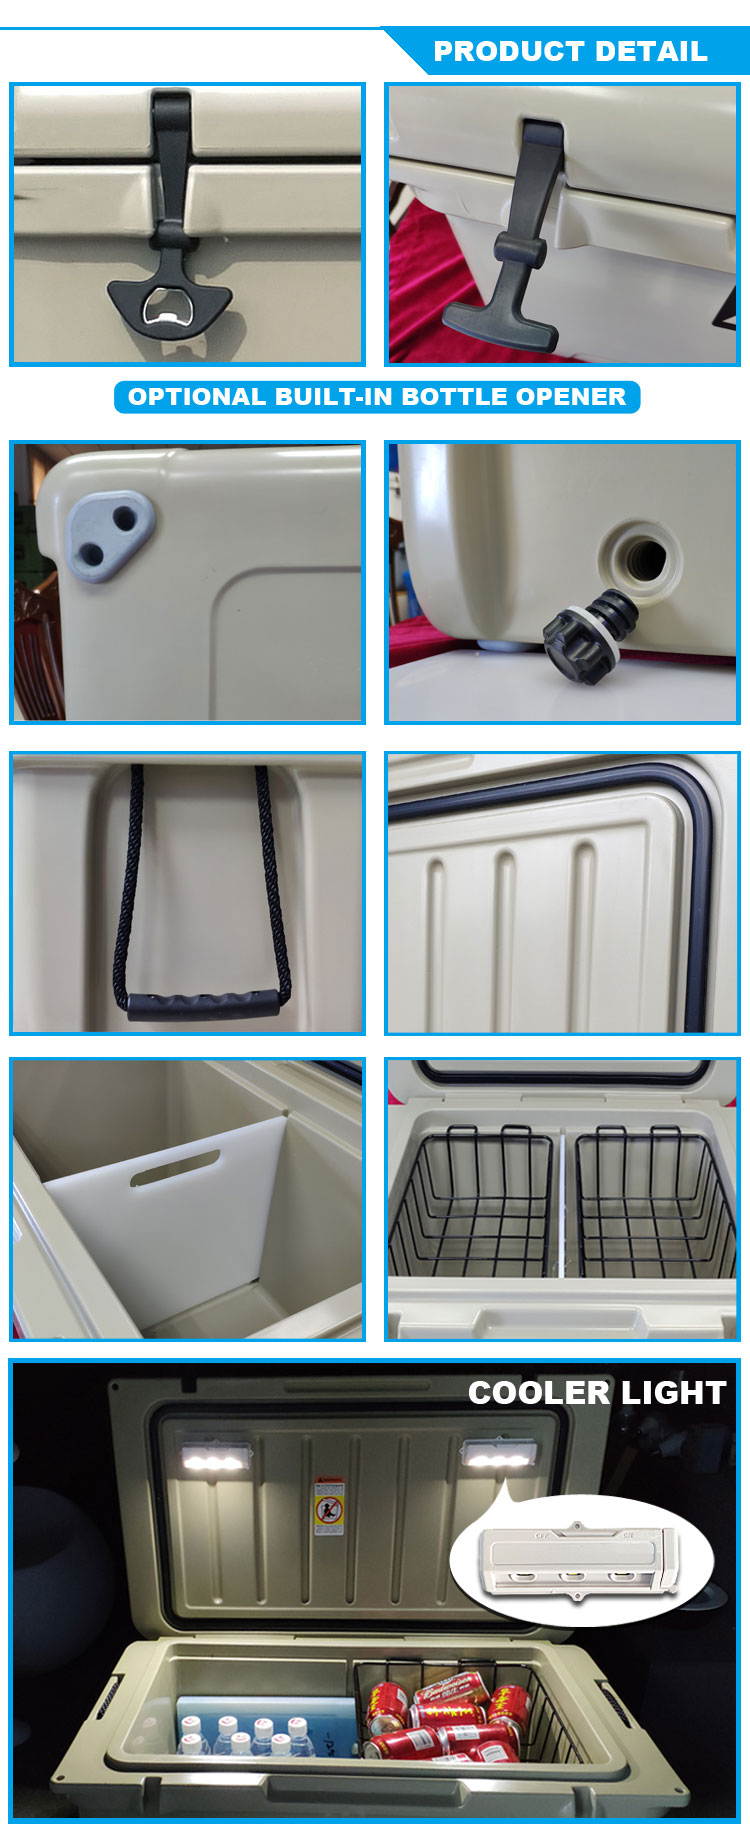 Small size commercial fishing boats fiberglass cooler box